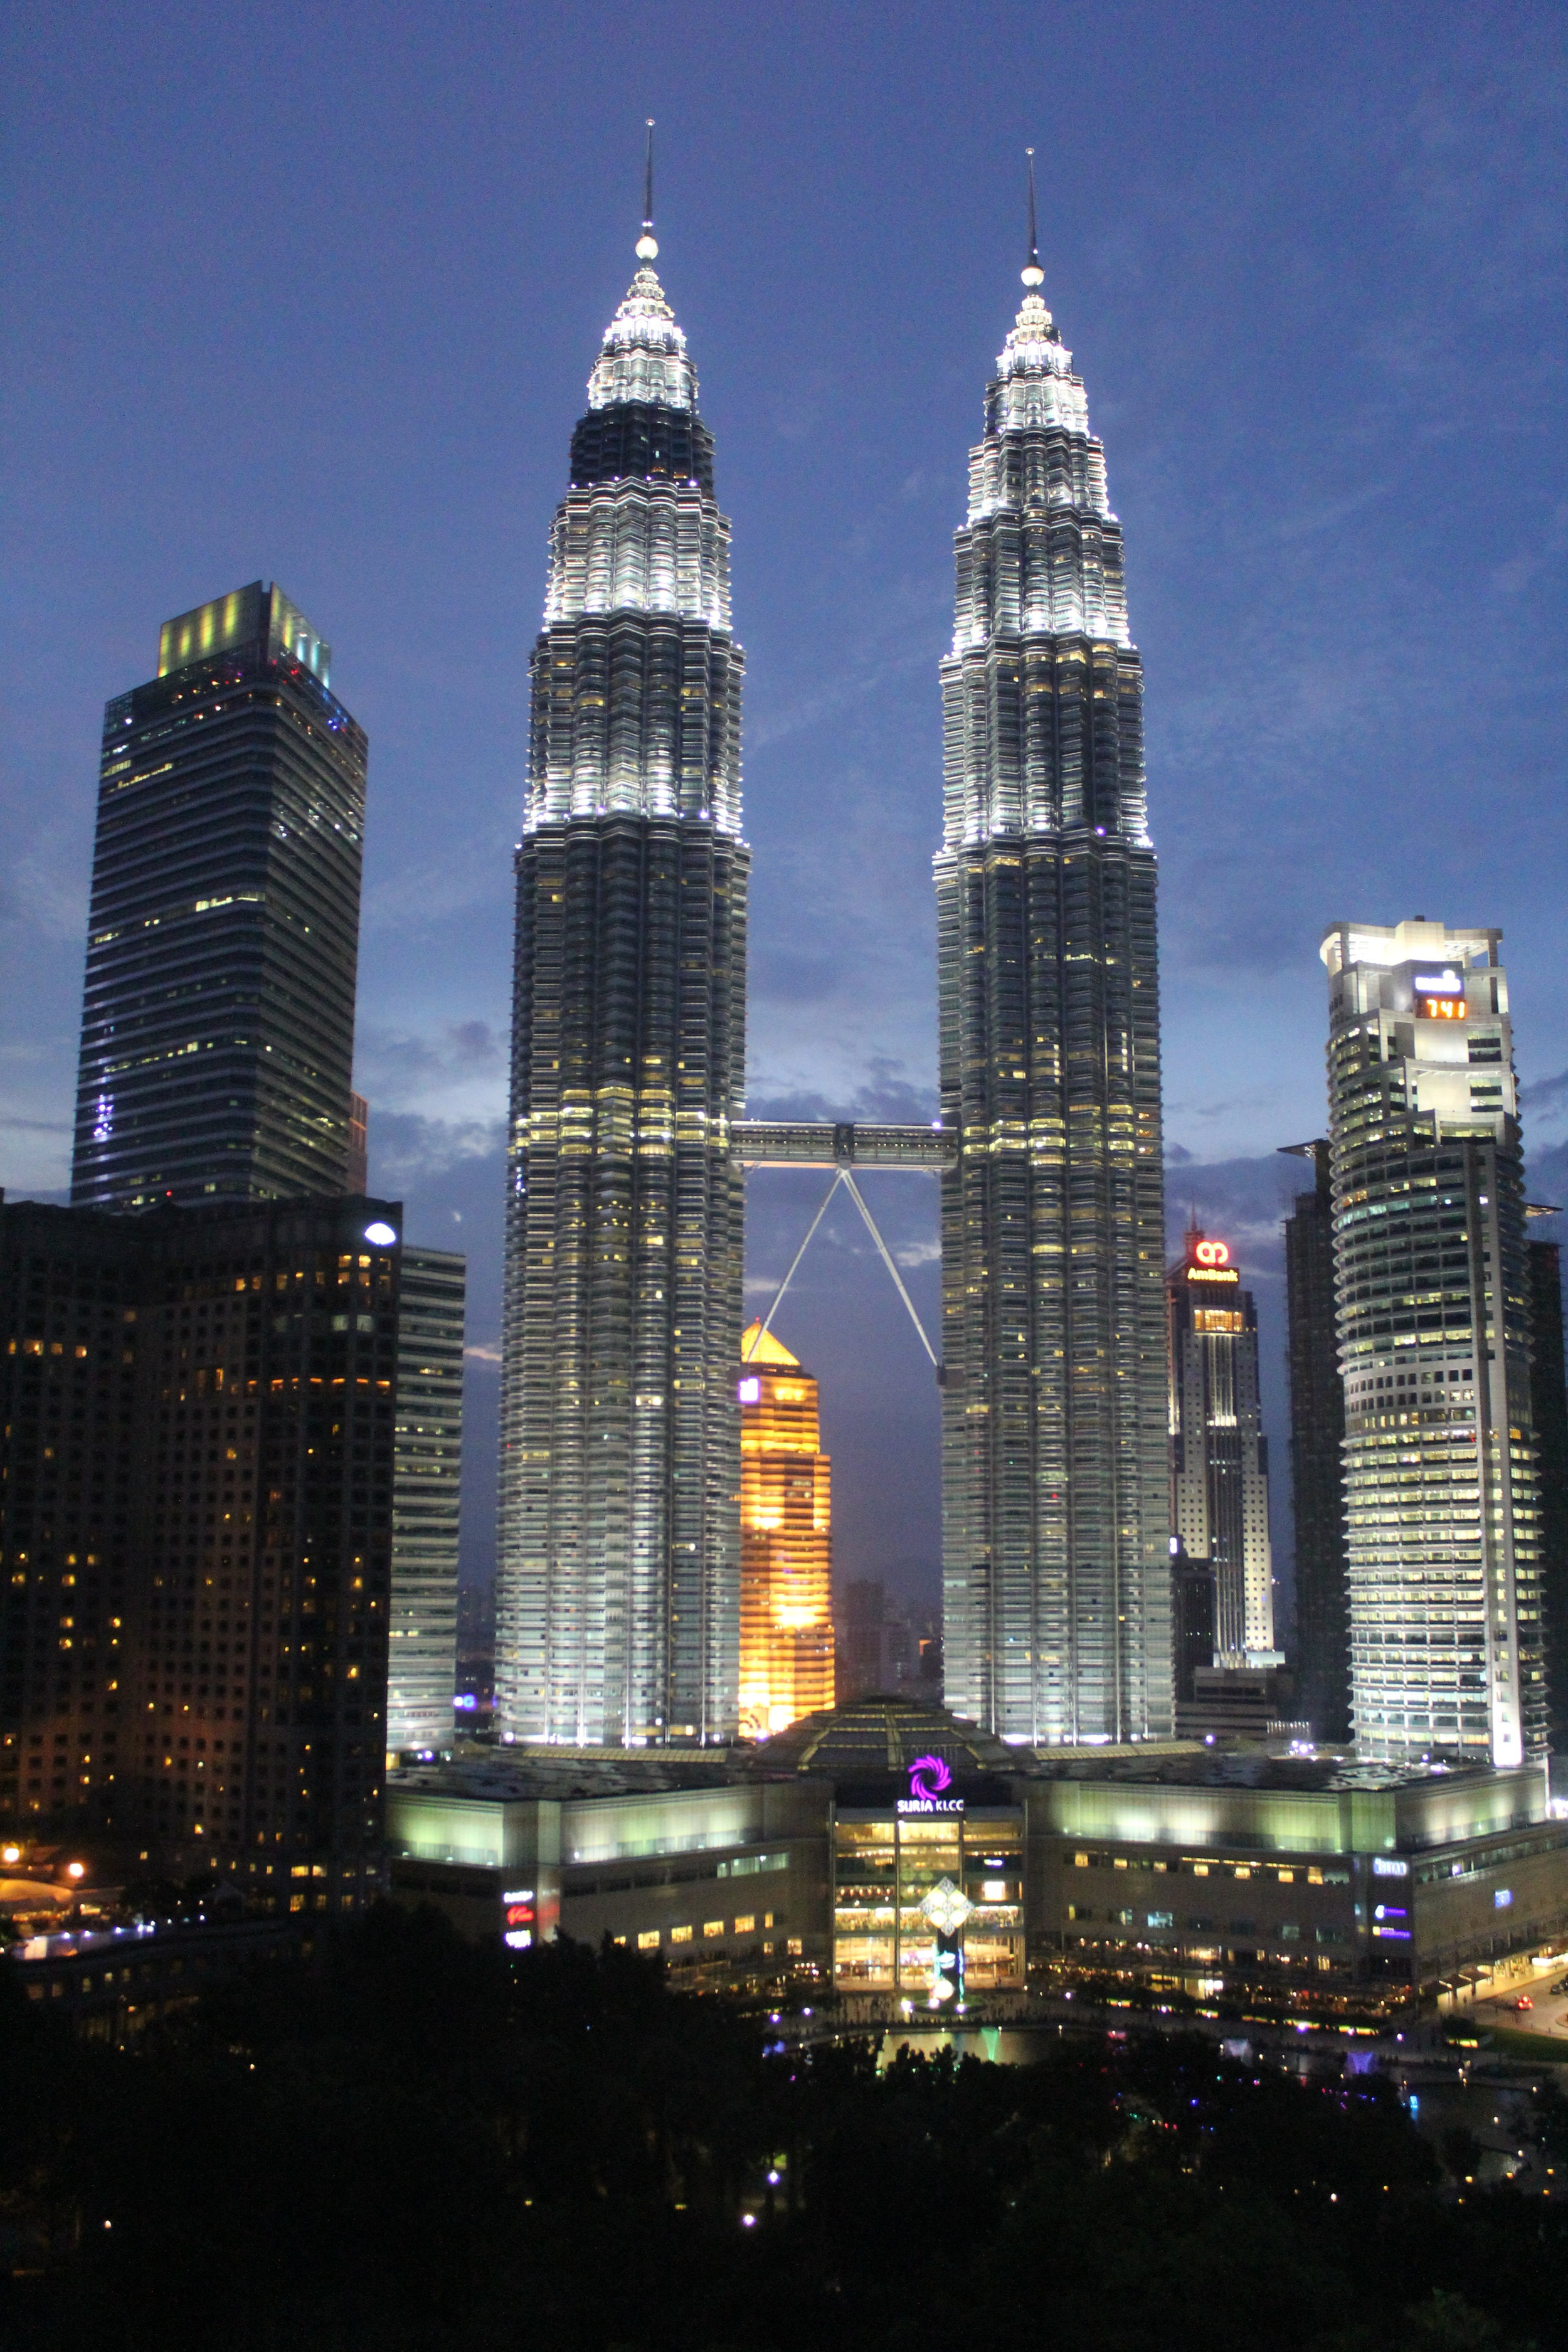 The view from my hotel window at Traders of the Petronas Towers in the heart of Kuala Lumpur